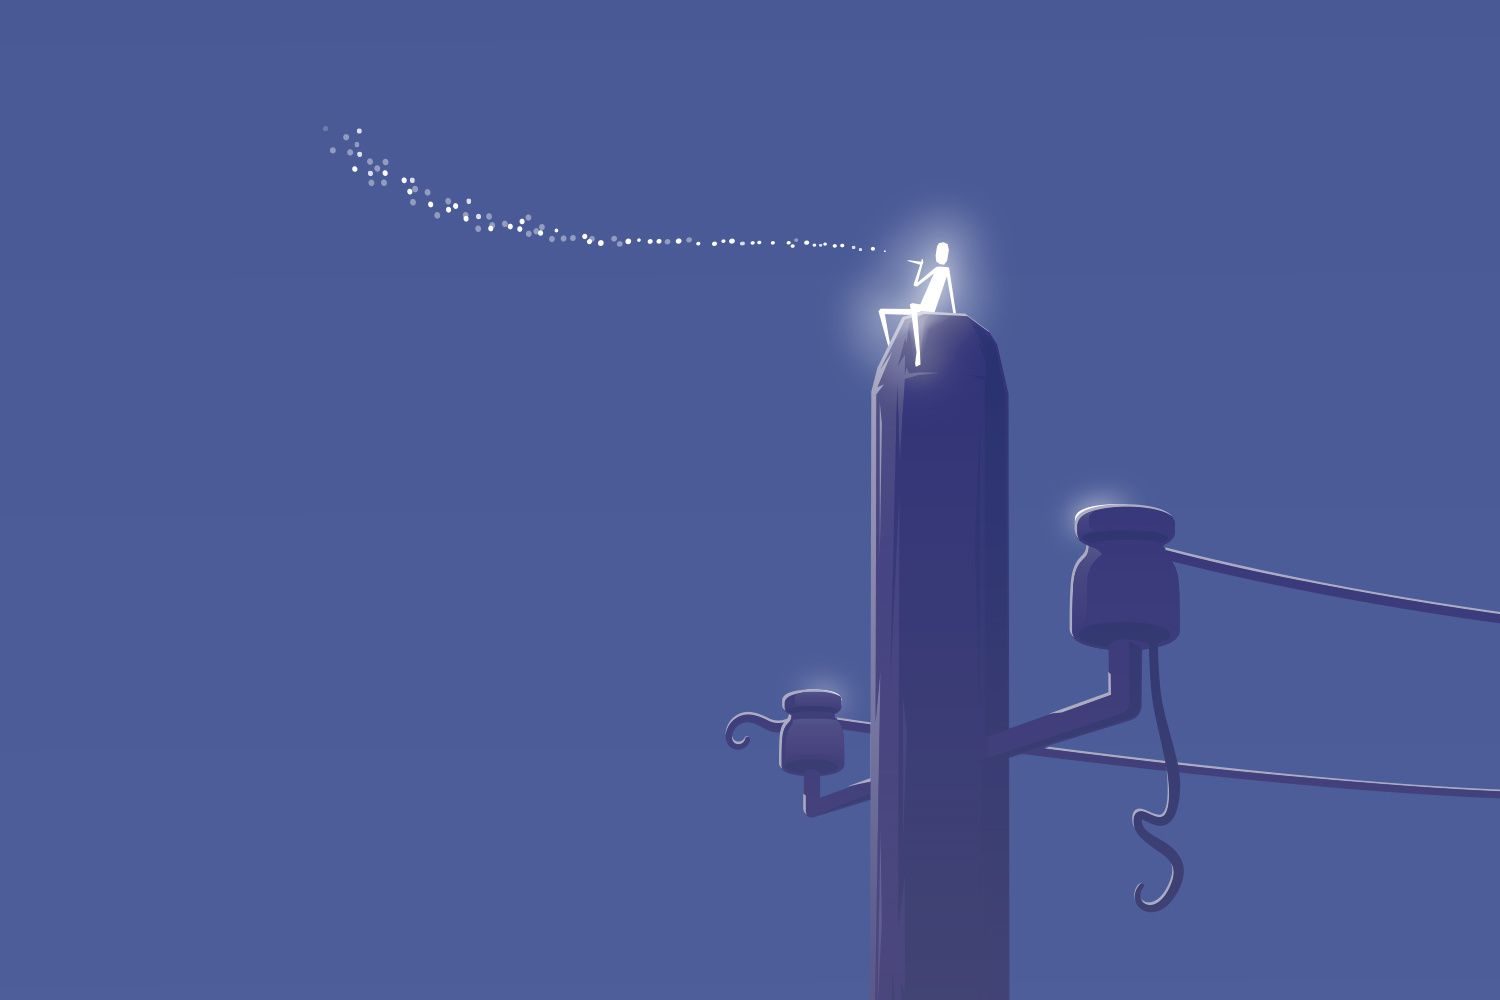 fairy blowing stars from telephone post. http://www.maxsaladrigas.work/